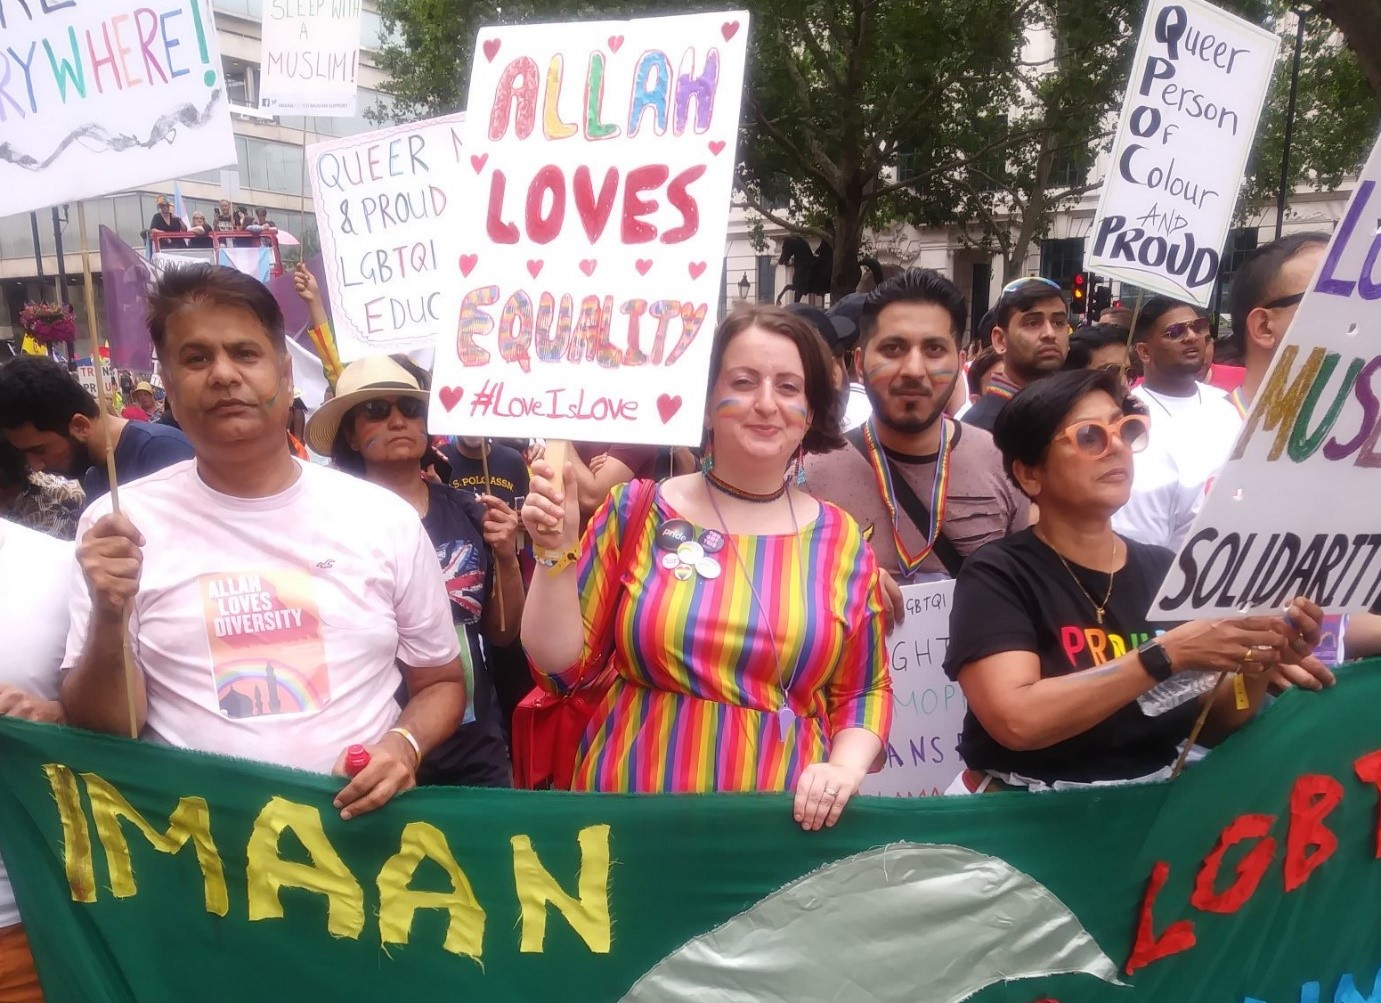 Allah loves equality – It's time to stand up as LGBTQI+ allies